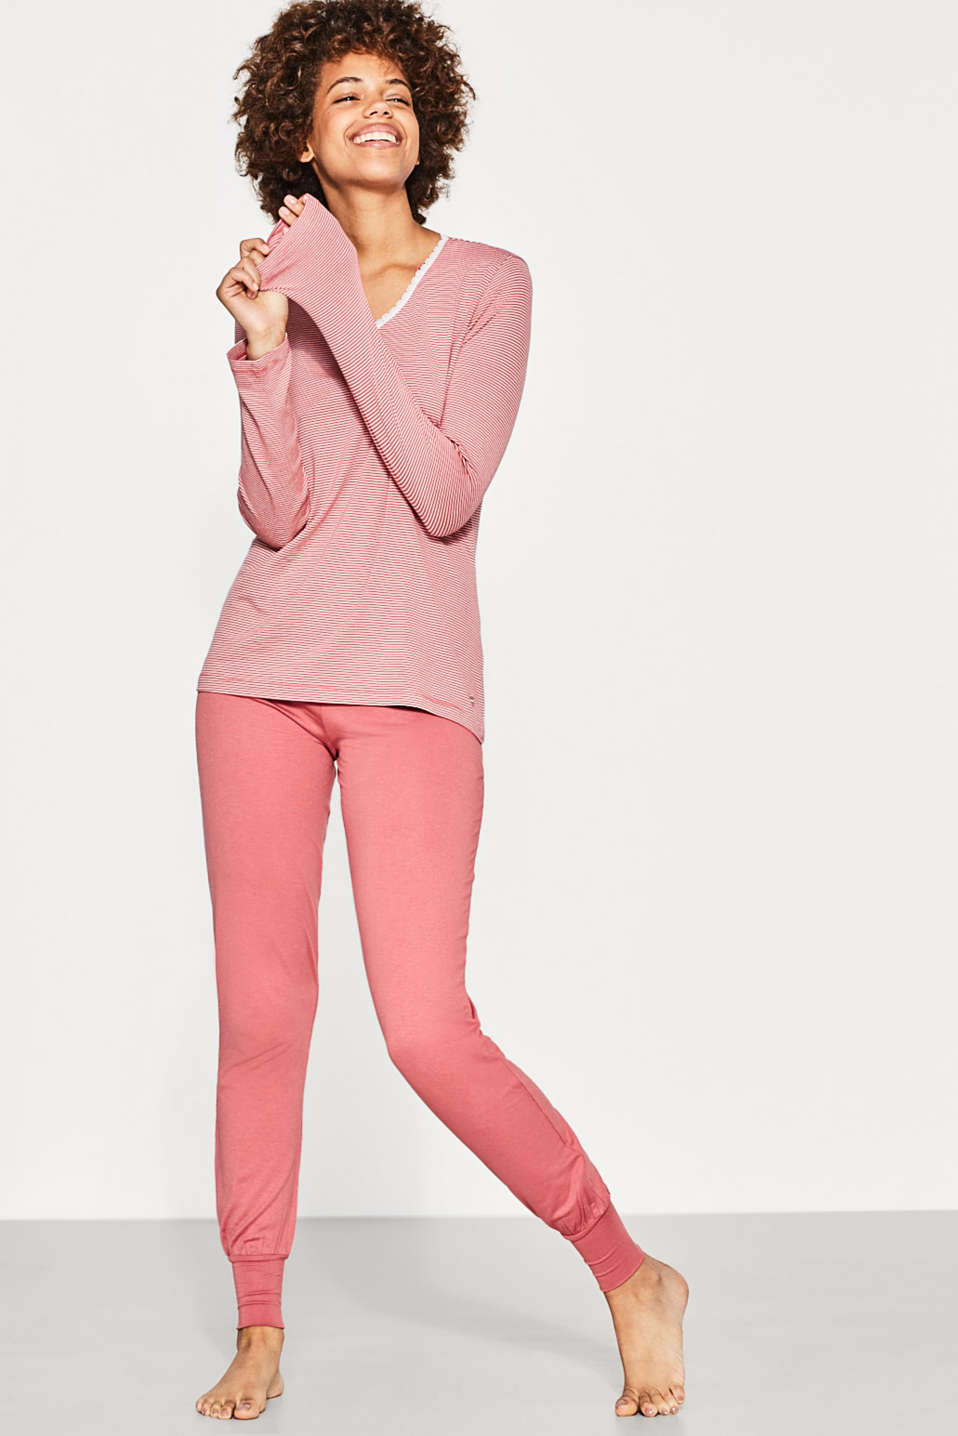 Esprit - Pyjamas made of flowing stretch jersey